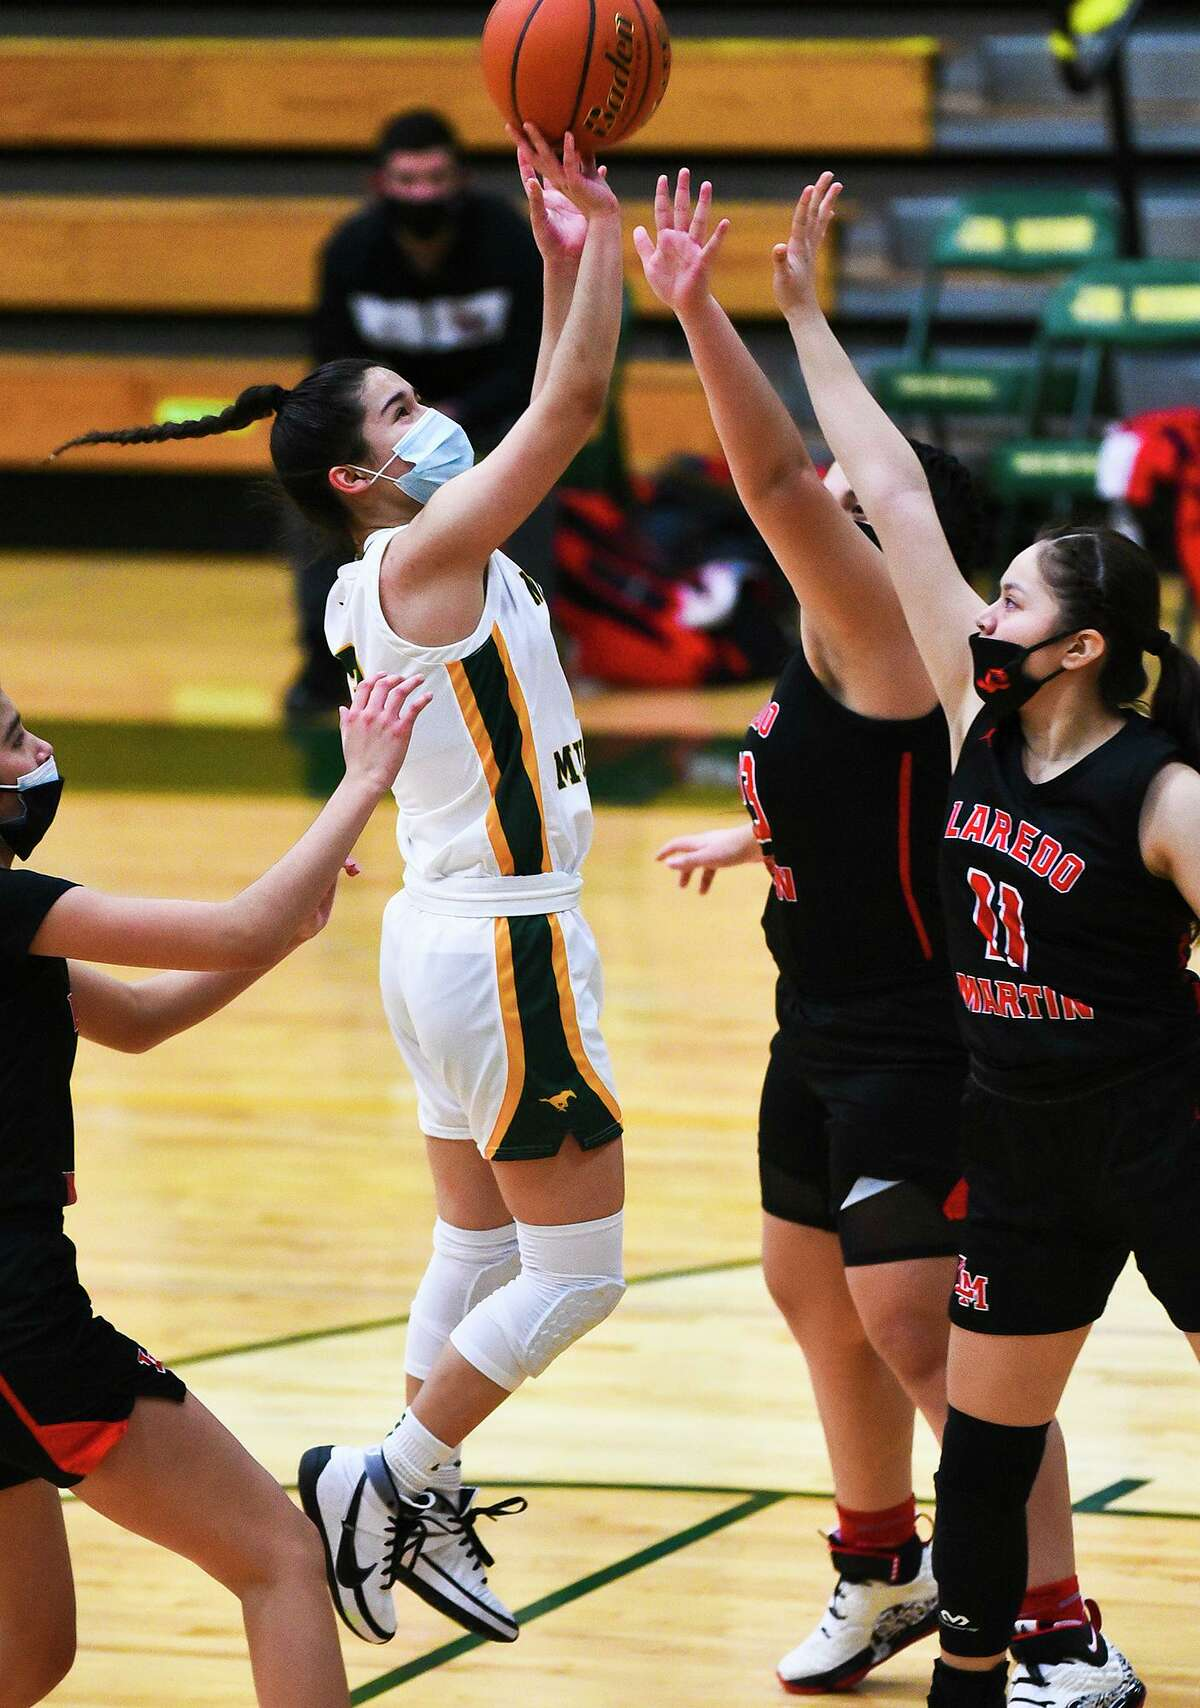 Rosa Cavazos and Nixon improved to 5-2 Tuesday closing out their non-district schedule with a 55-32 victory at home over rival Martin.